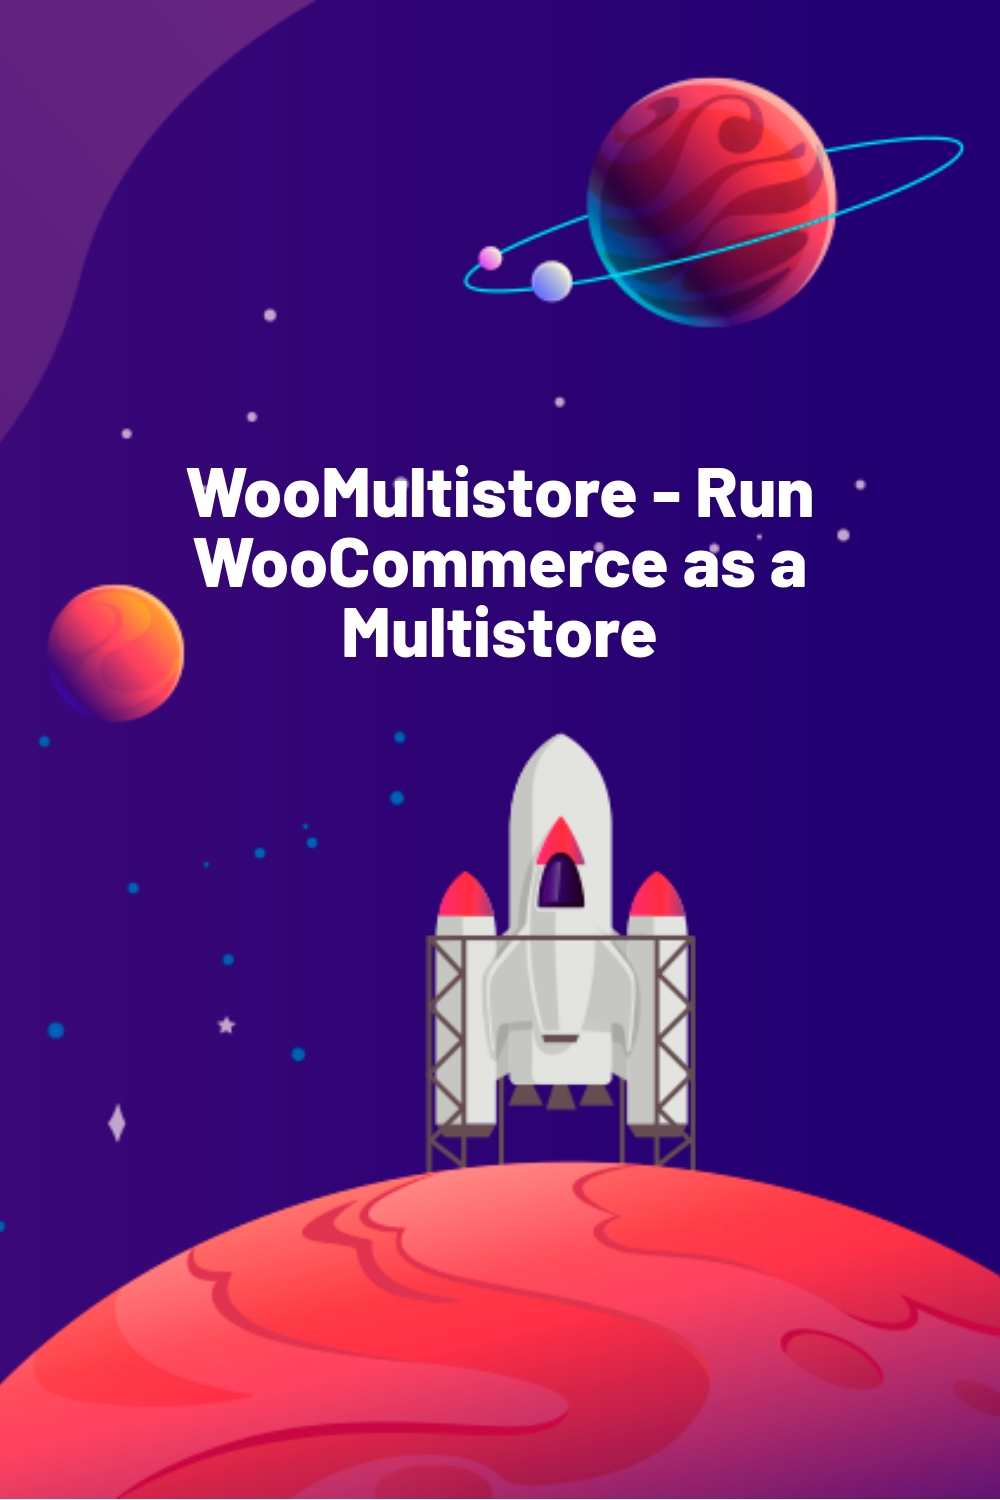 WooMultistore – Run WooCommerce as a Multistore